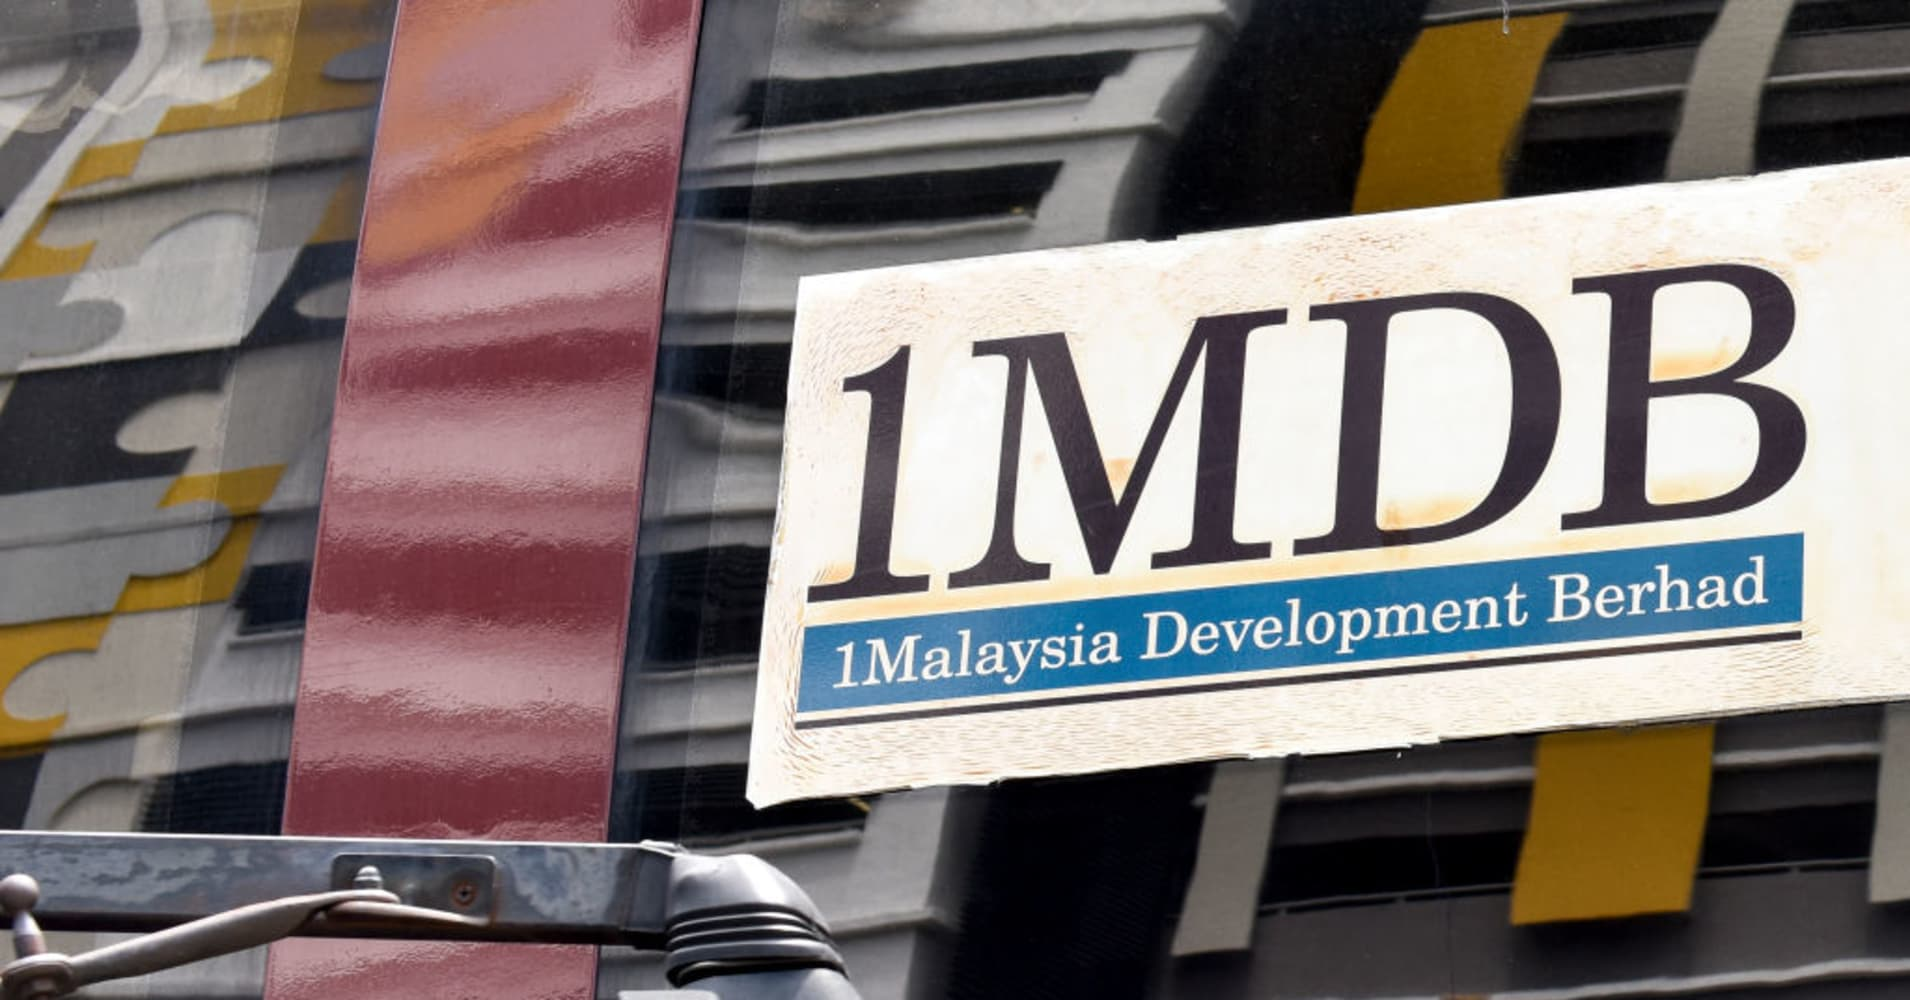 Goldman Sachs says it was lied to in 1MDB scandal that has plagued its stock